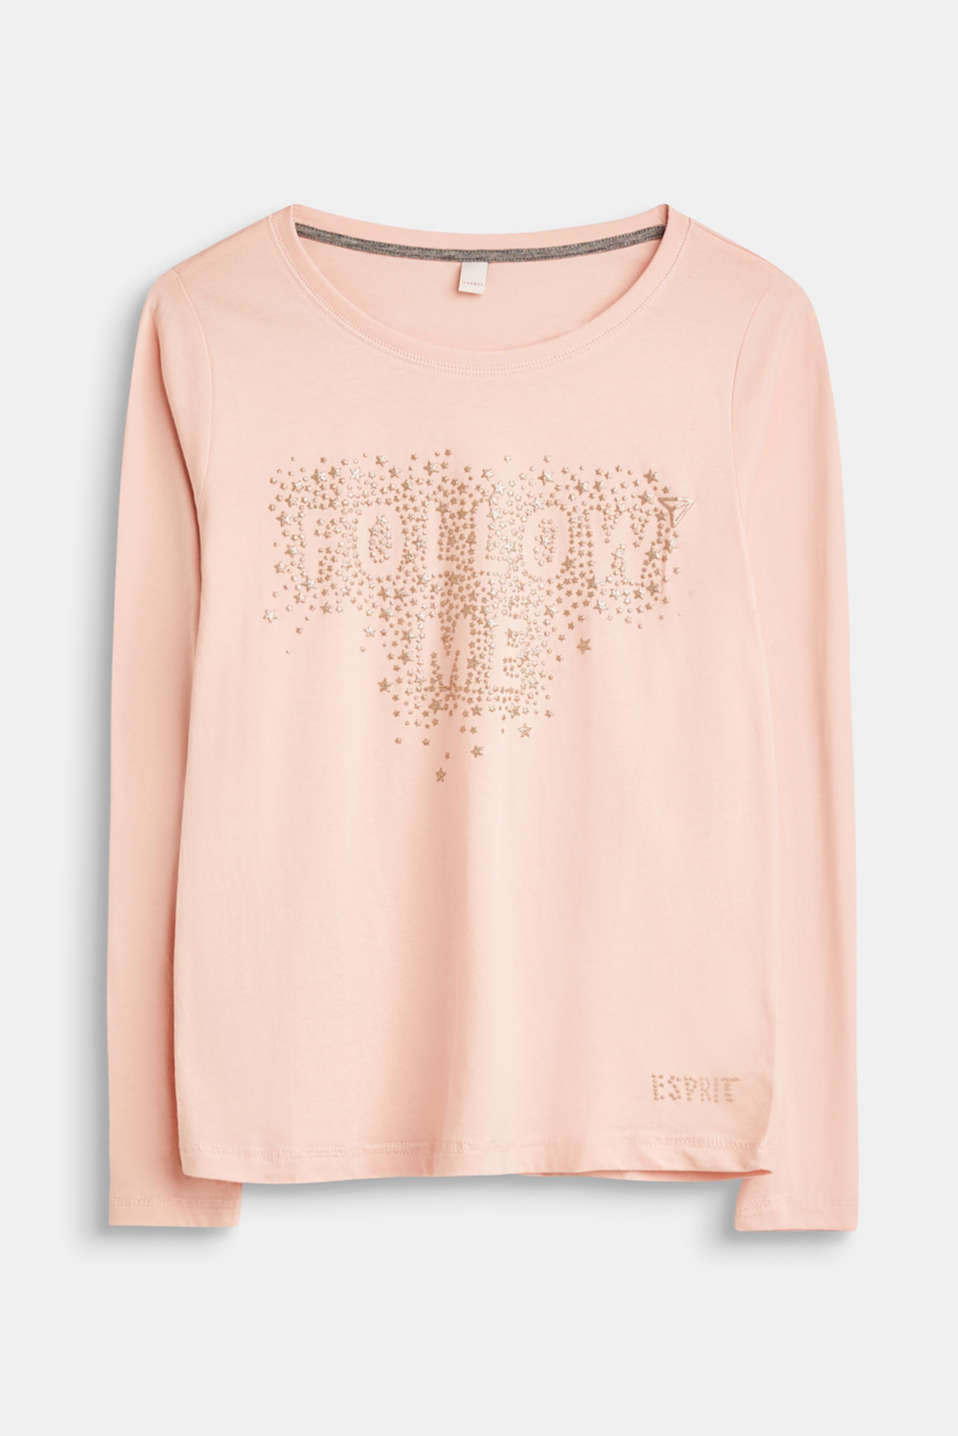 Esprit - Long sleeve top with a glittering 3D print